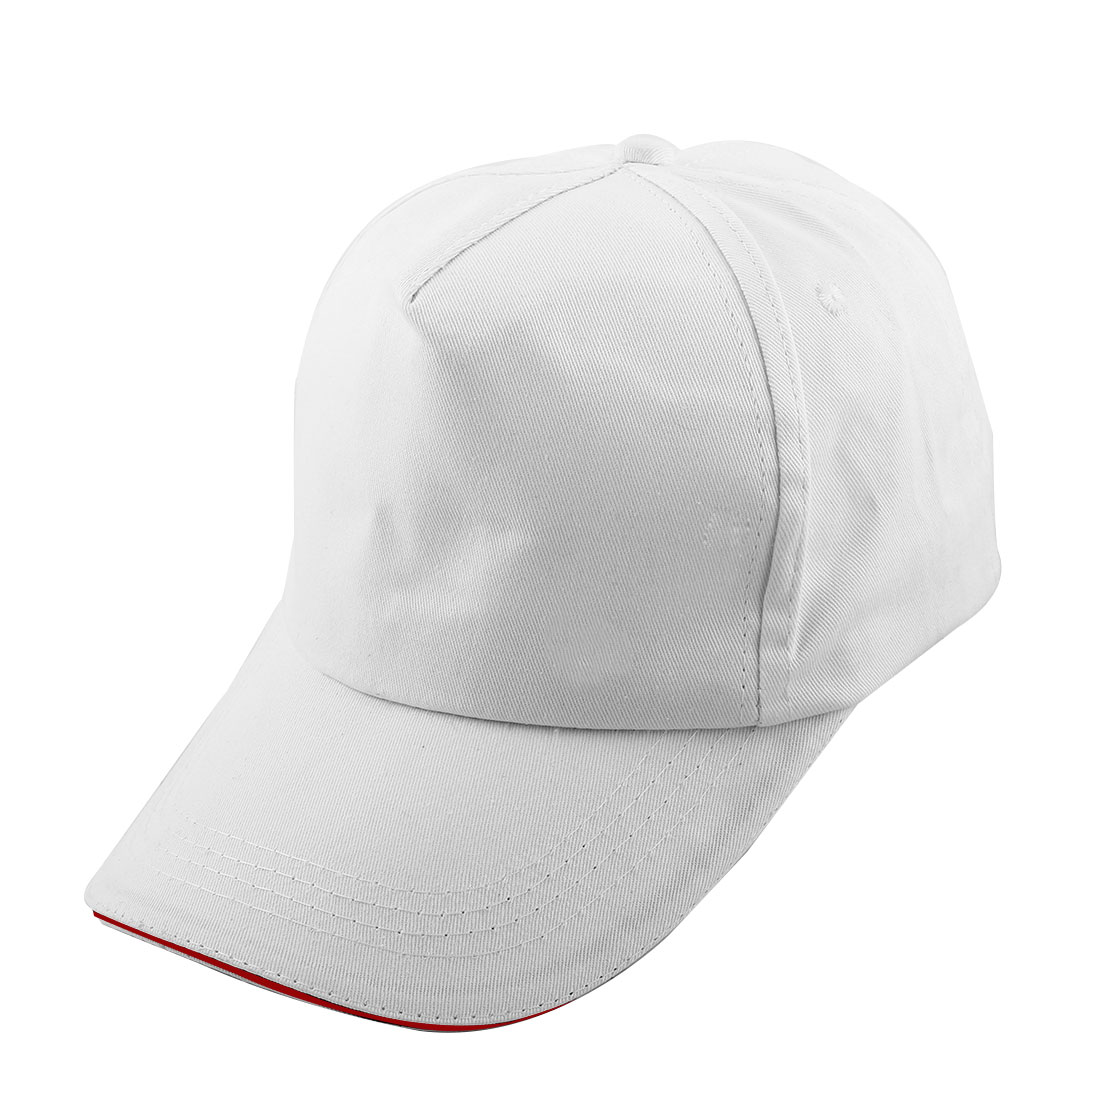 Outdoor Travel Cotton Blends 5 Panel Adjustable Loop Golf Baseball Cap Sports Hat White